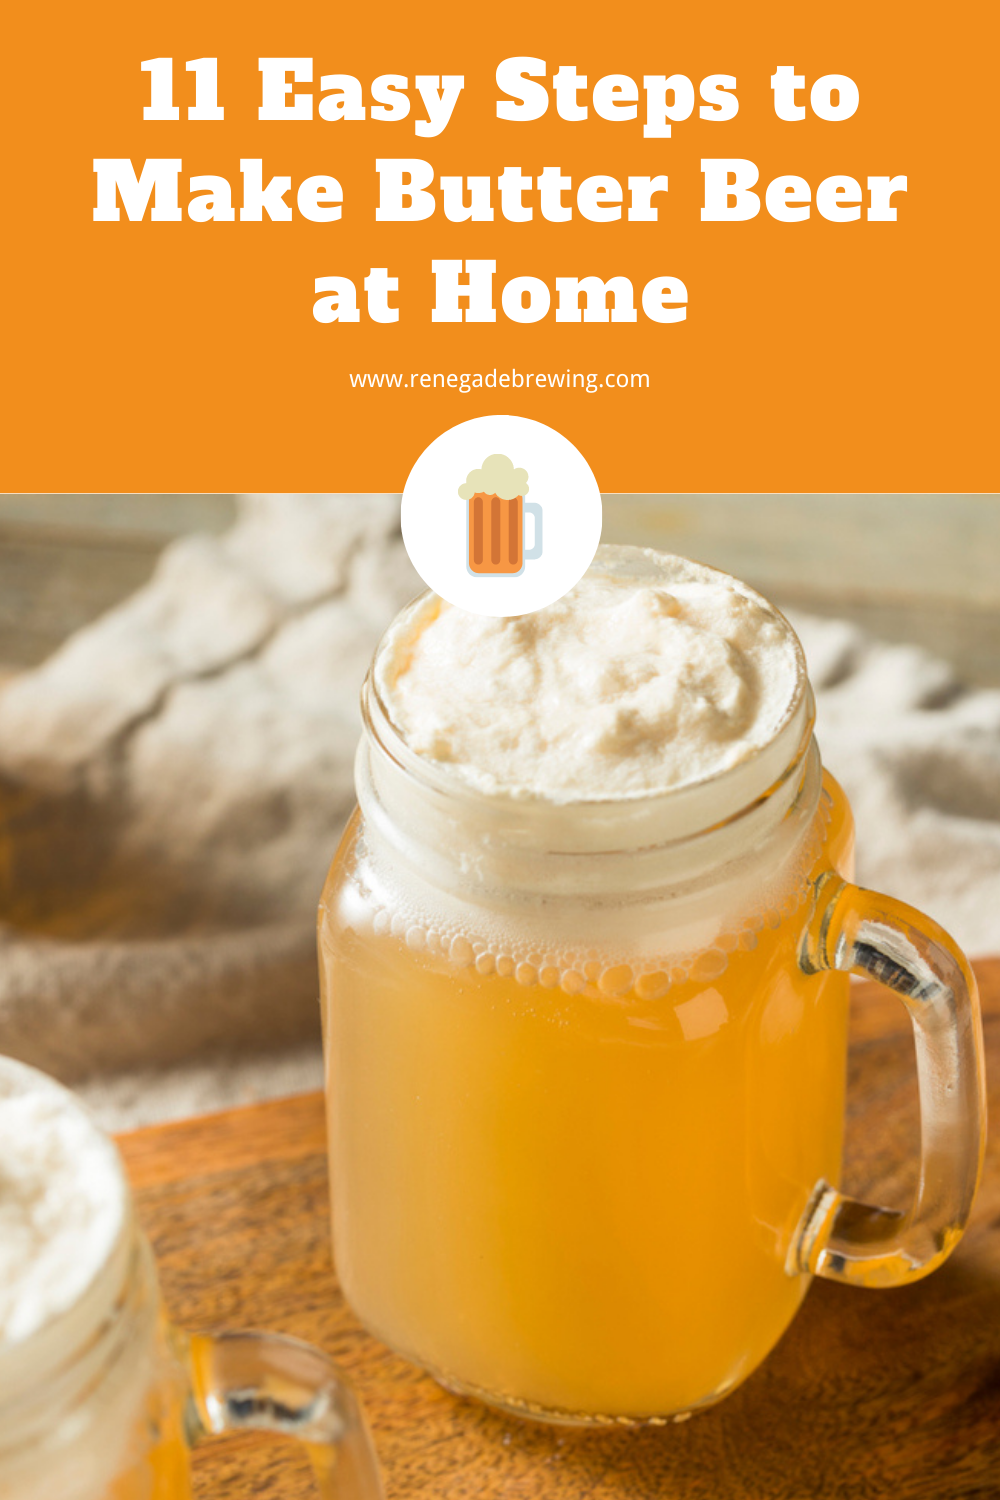 11 Easy Steps to Make Butter Beer at Home 2